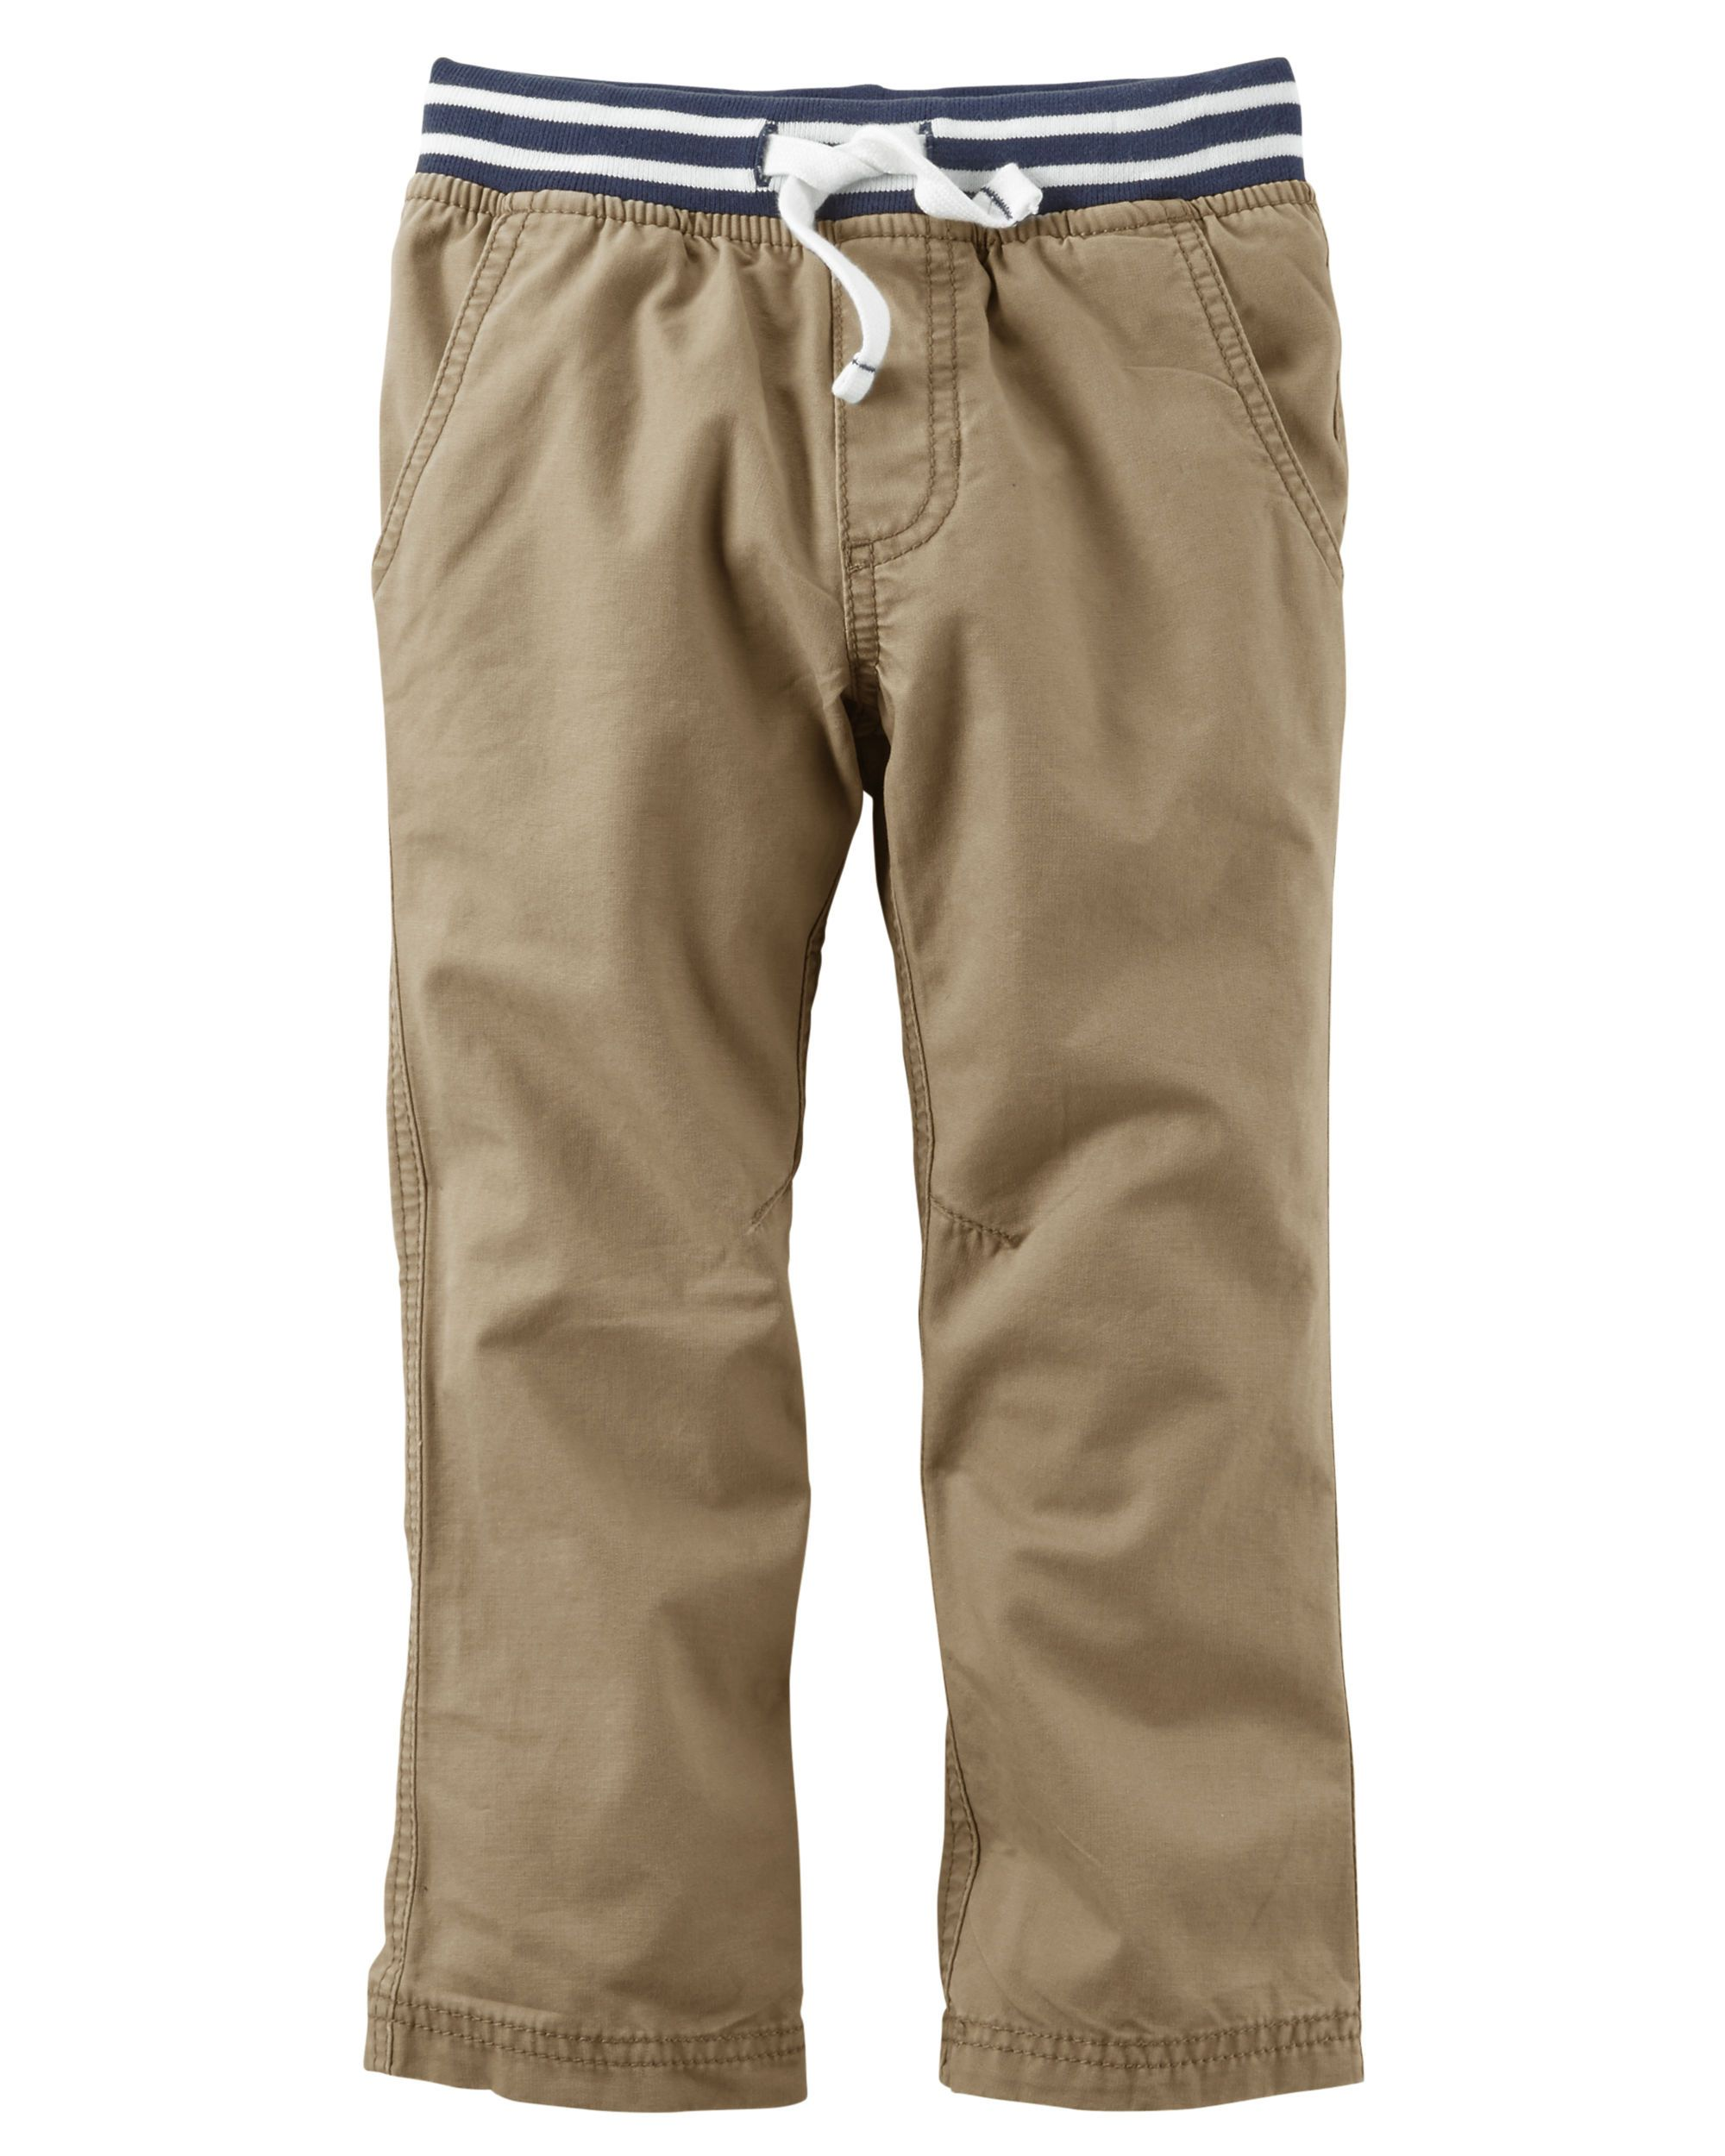 Kid Boy Canvas Utility Pants from Carters.com. Shop ...